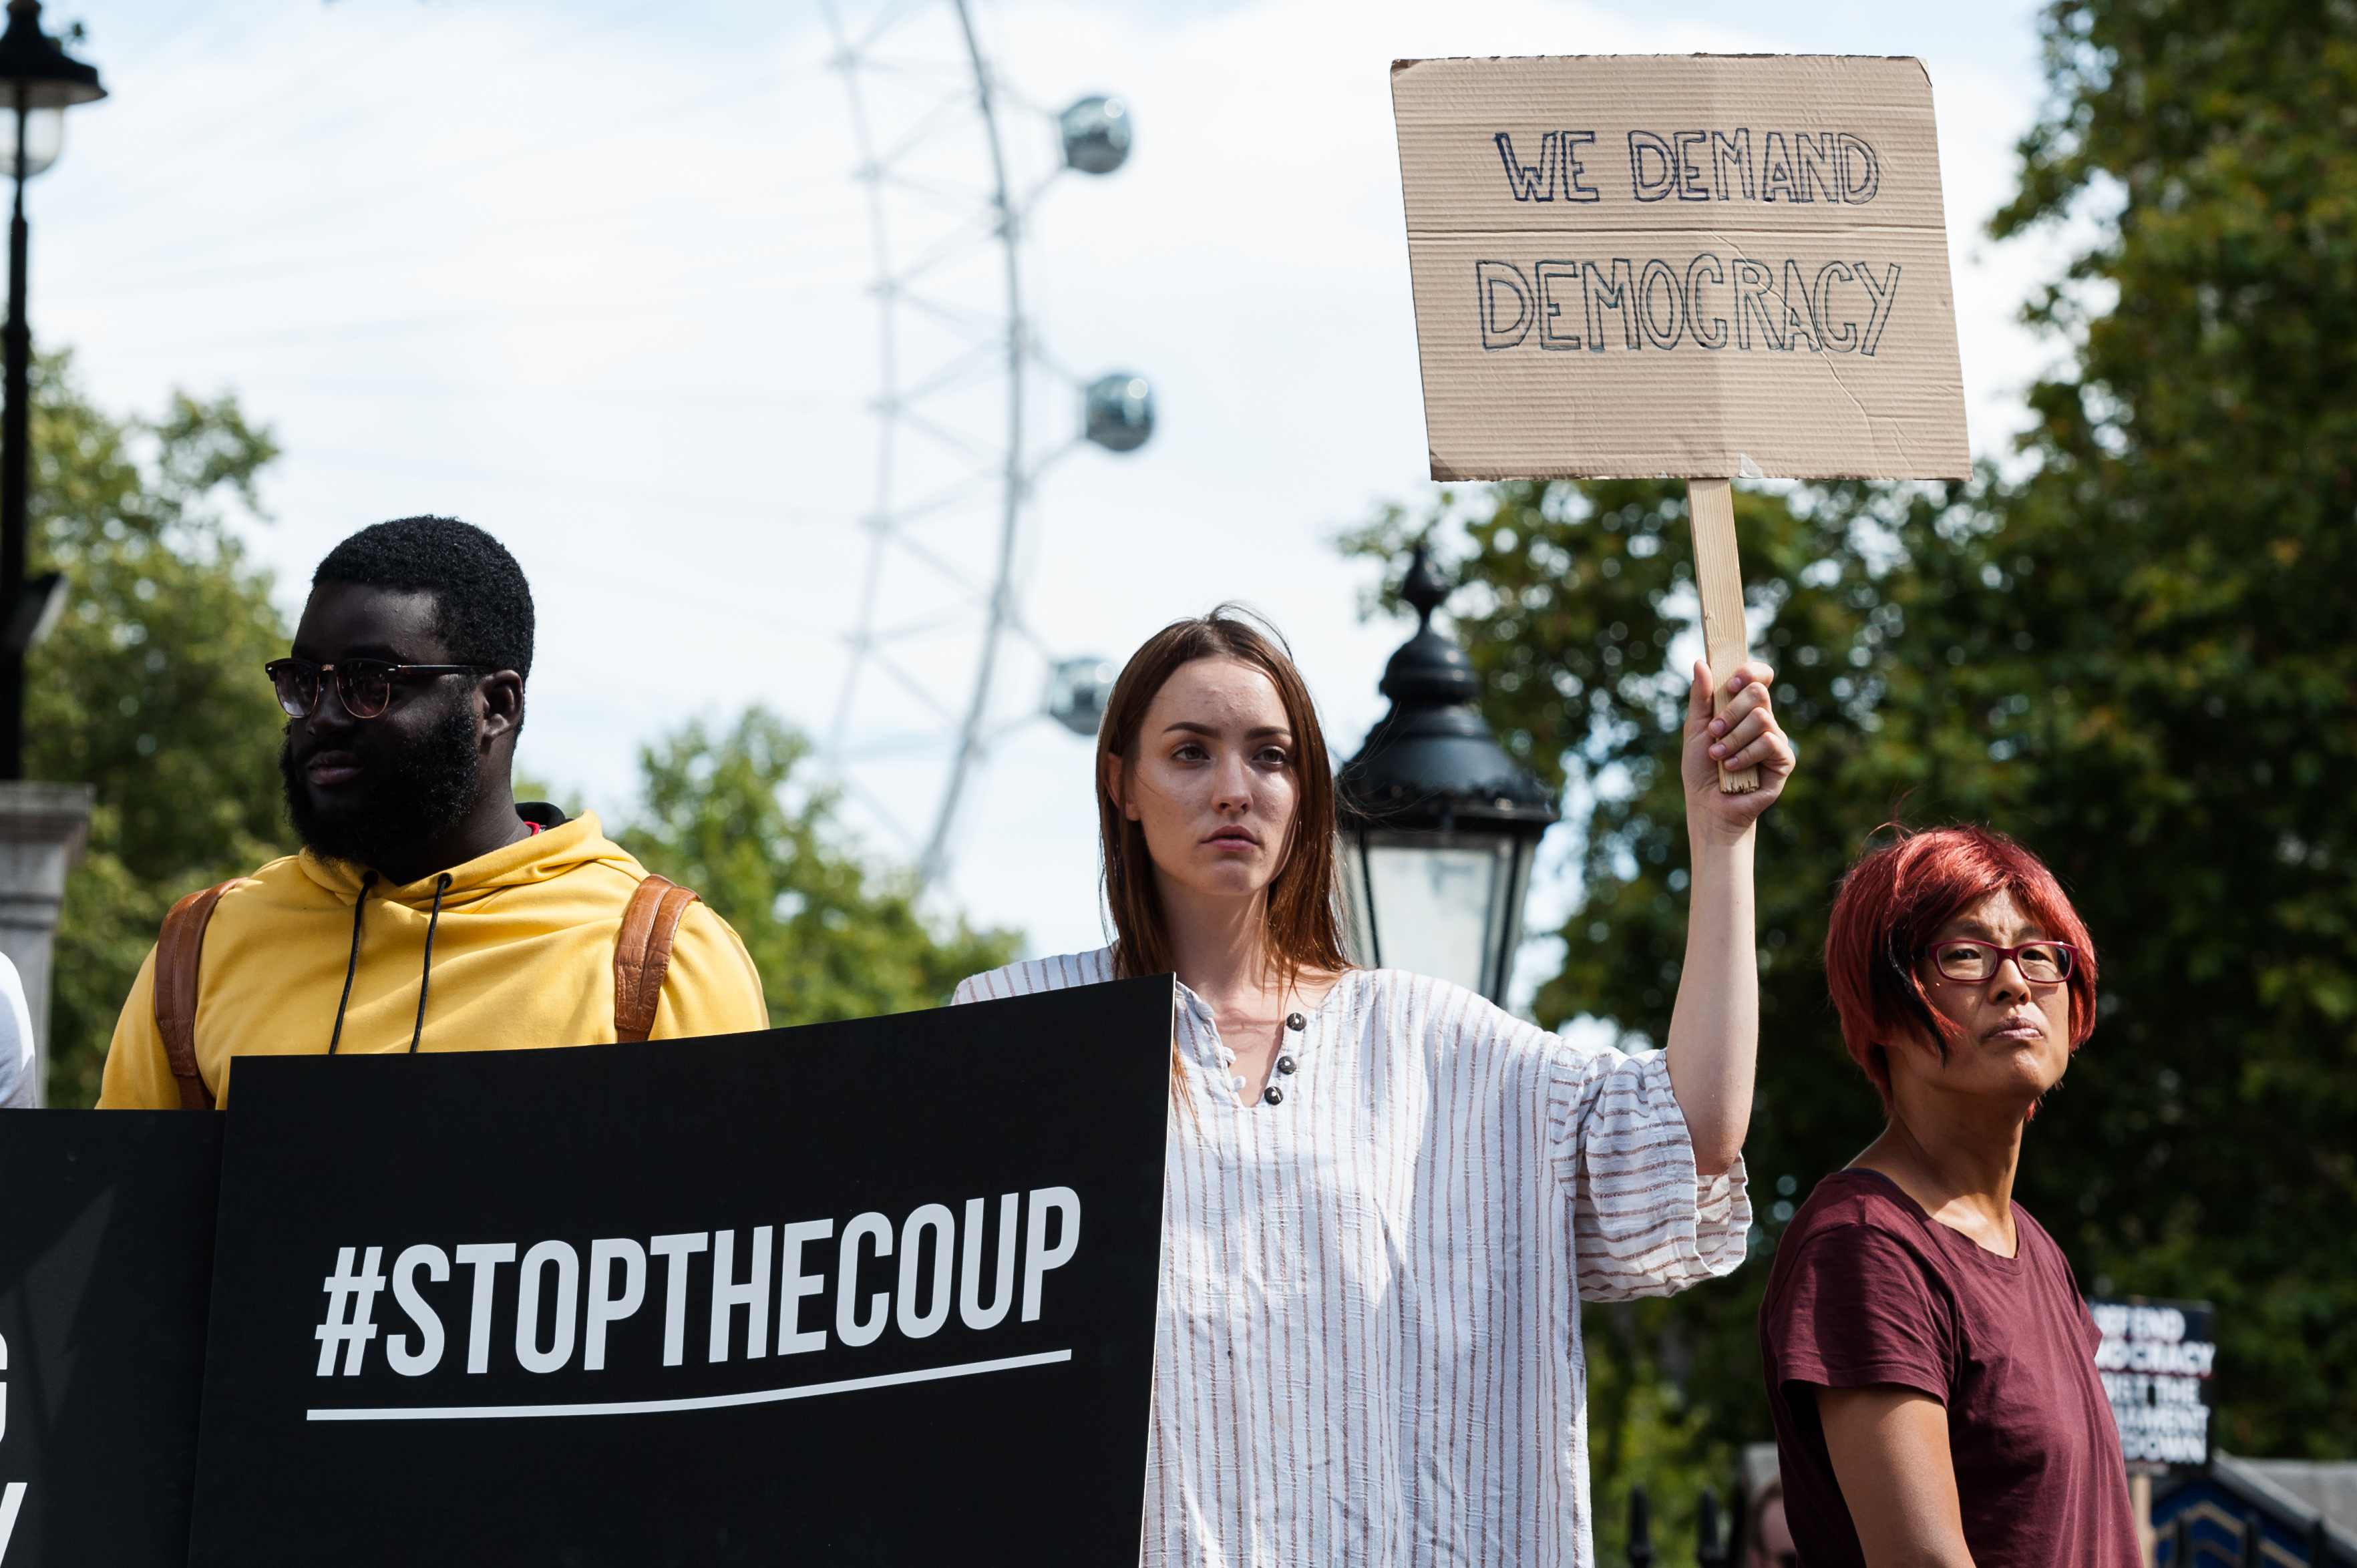 Thousands of demonstrators gather outside Downing Street on 31 August, 2019 in London, England to take part in Stop the Coup protests against the prorogation of the UK Parliament. Hundreds of thousands of people across major cities in the UK are expected to join protests against Boris Johnson's plans to suspend parliament for five weeks ahead of a Queens Speech on 14 October, which has limited the time available for MPs to legislate against a no-deal Brexit with the UK is set to leave the EU on the 31 October. (Photo by WIktor Szymanowicz/NurPhoto via Getty Images)